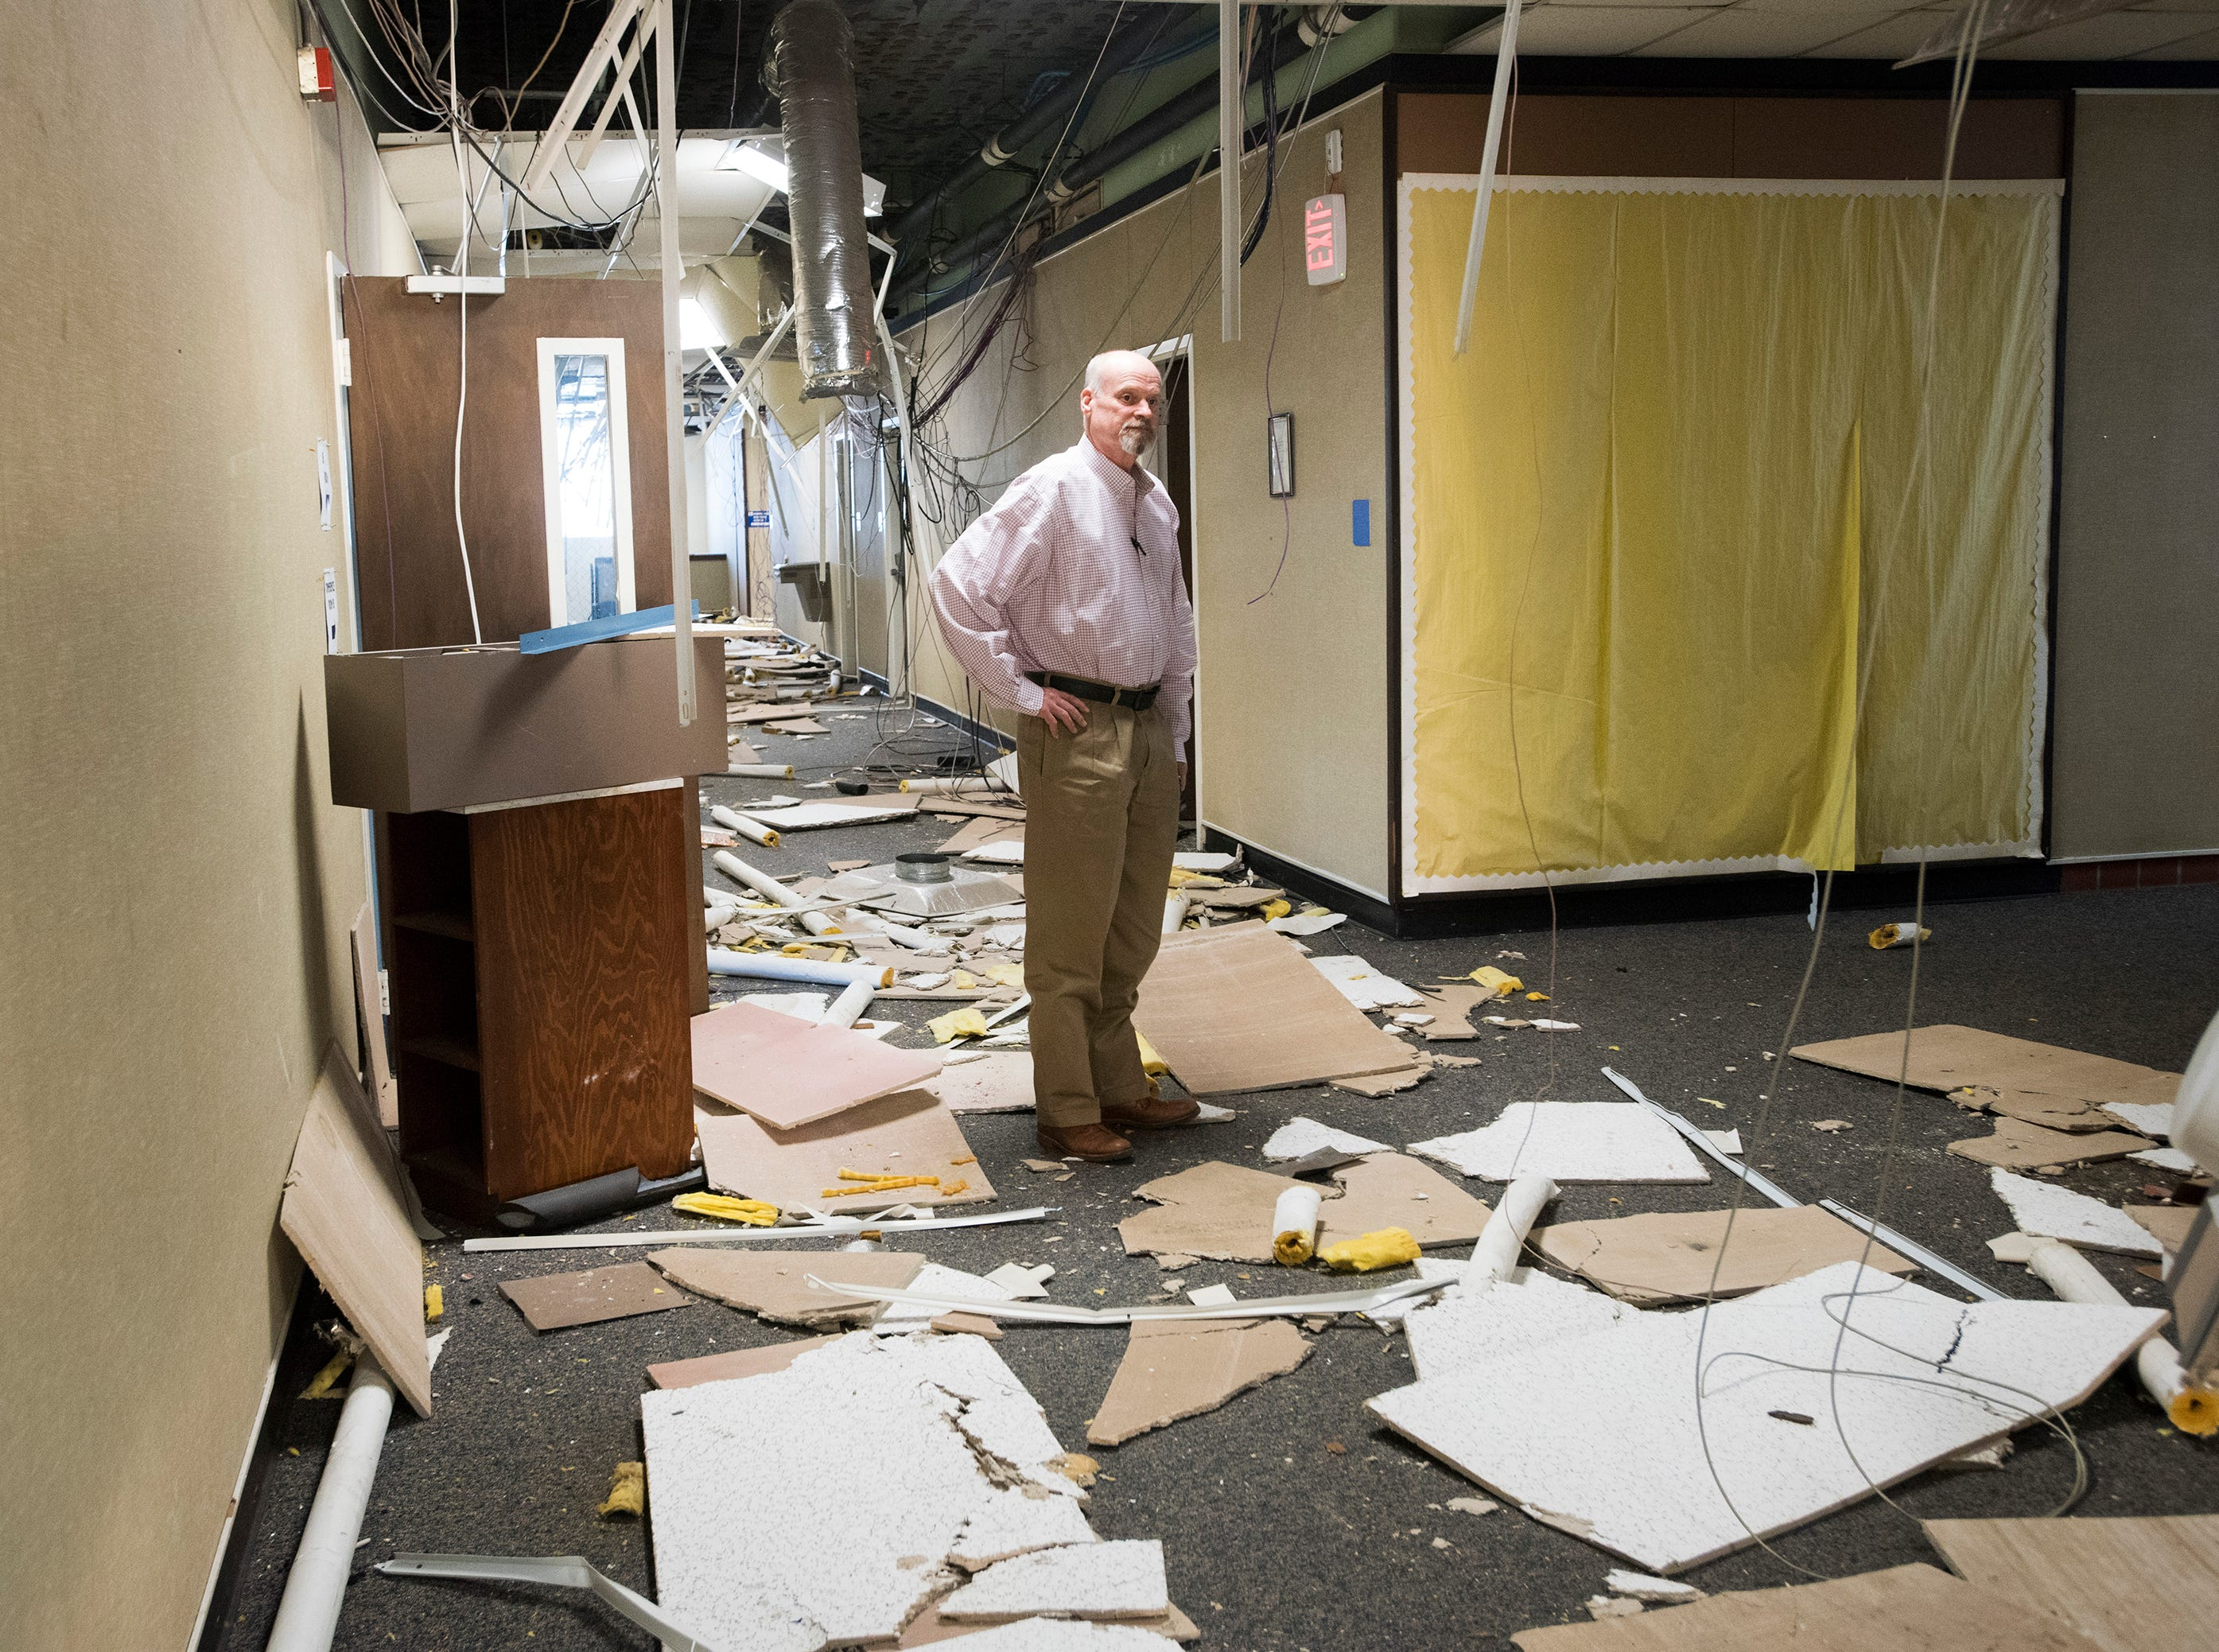 Realtor Danny Zimmern inspects the damage caused by vandals at the old district headquarters building on Garden Street on Tuesday, Dec. 4, 2018. Developers want to build a 280-unit apartment complex on the school district site.